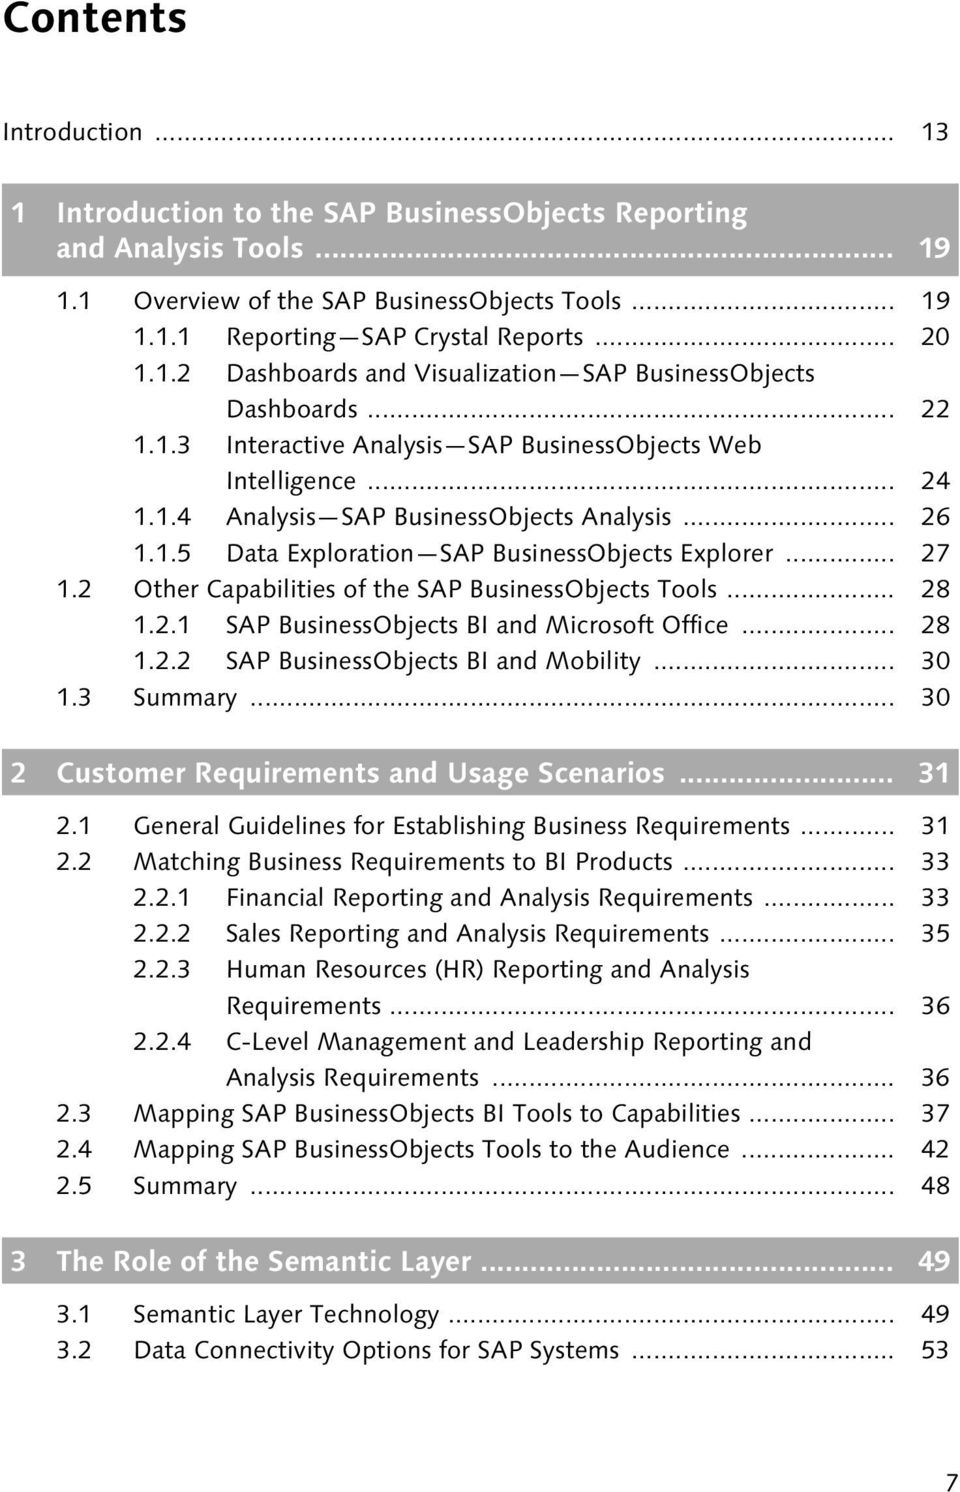 .. 27 1.2 Other Capabilities of the SAP BusinessObjects Tools... 28 1.2.1 SAP BusinessObjects BI and Microsoft Office... 28 1.2.2 SAP BusinessObjects BI and Mobility... 30 1.3 Summary.